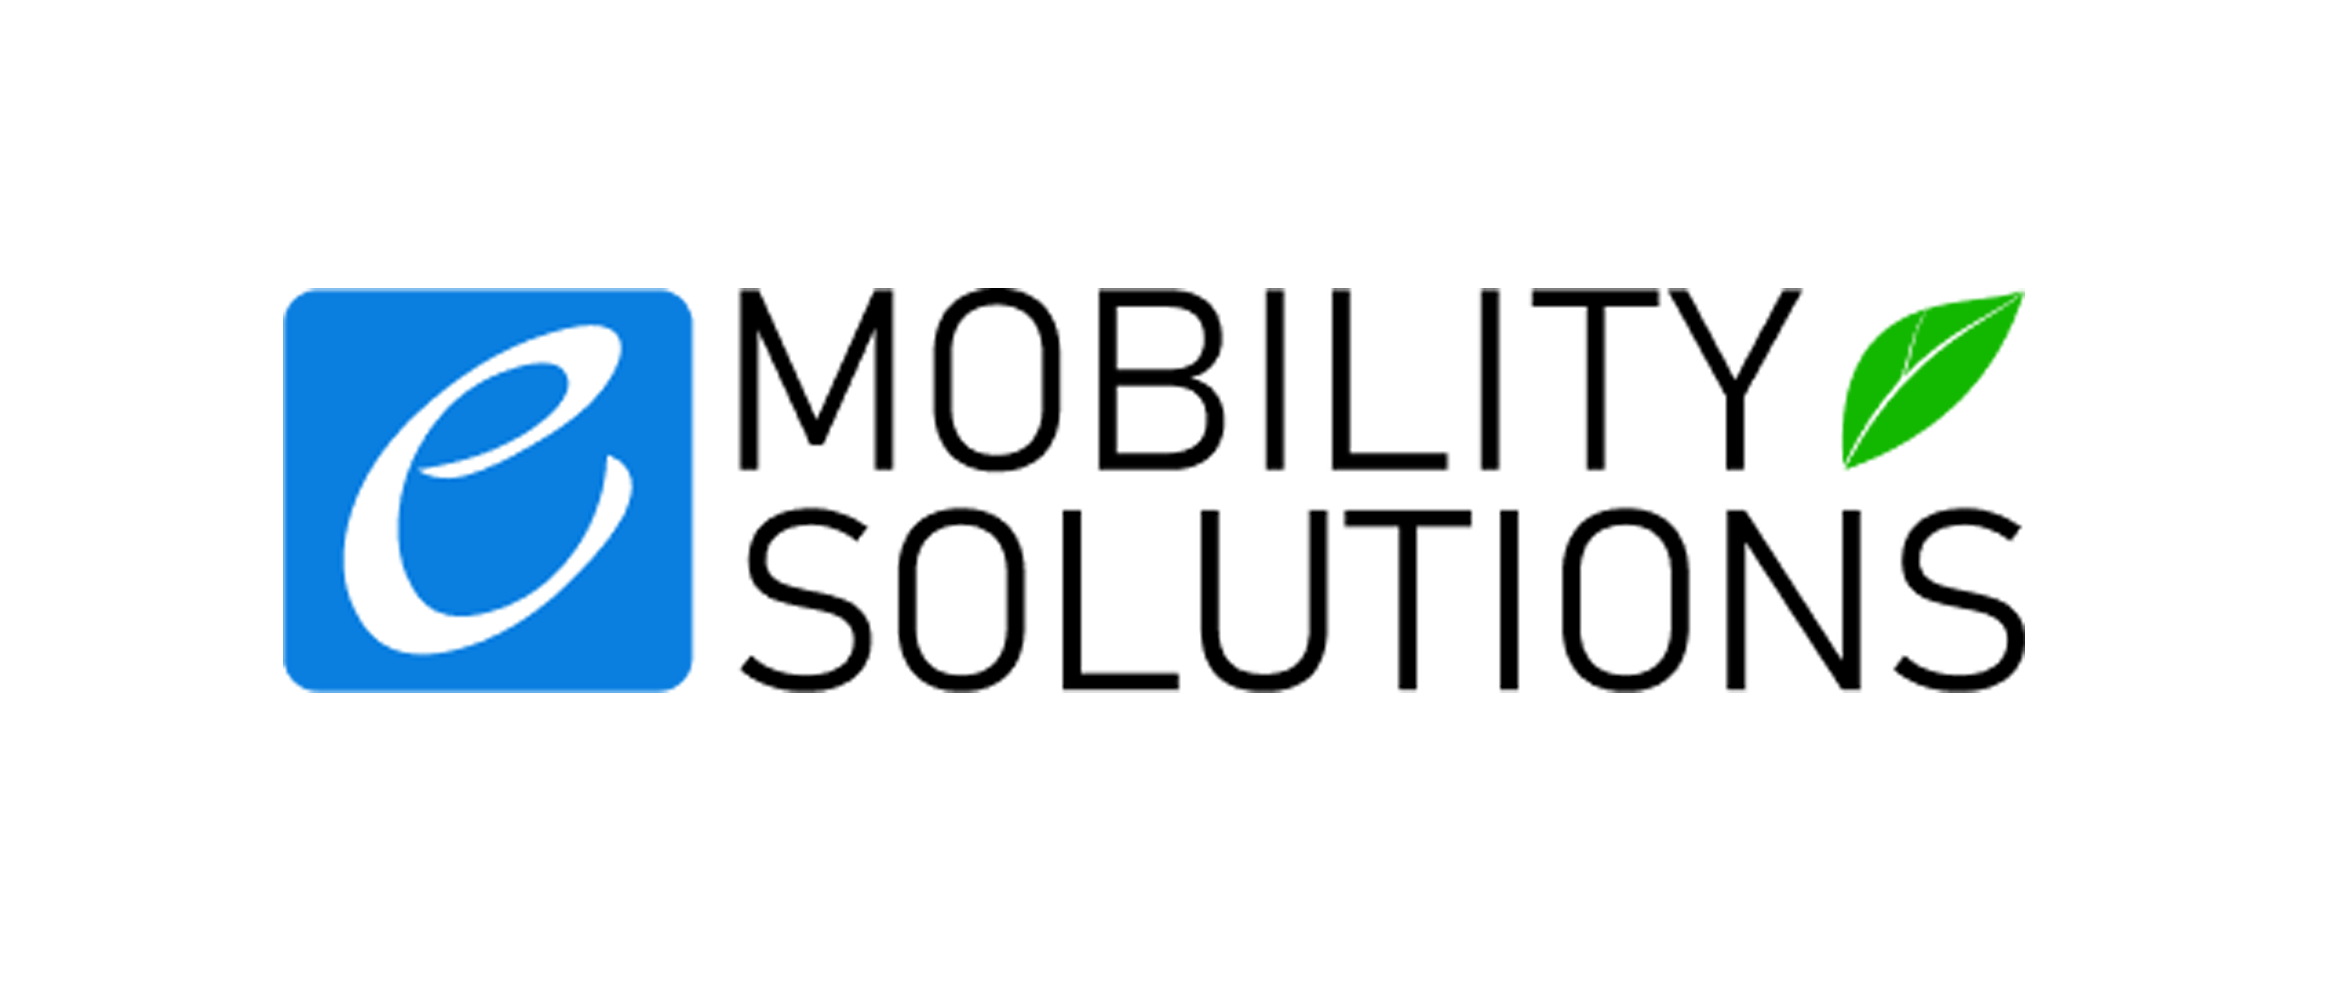 Emobilitysolutions.be